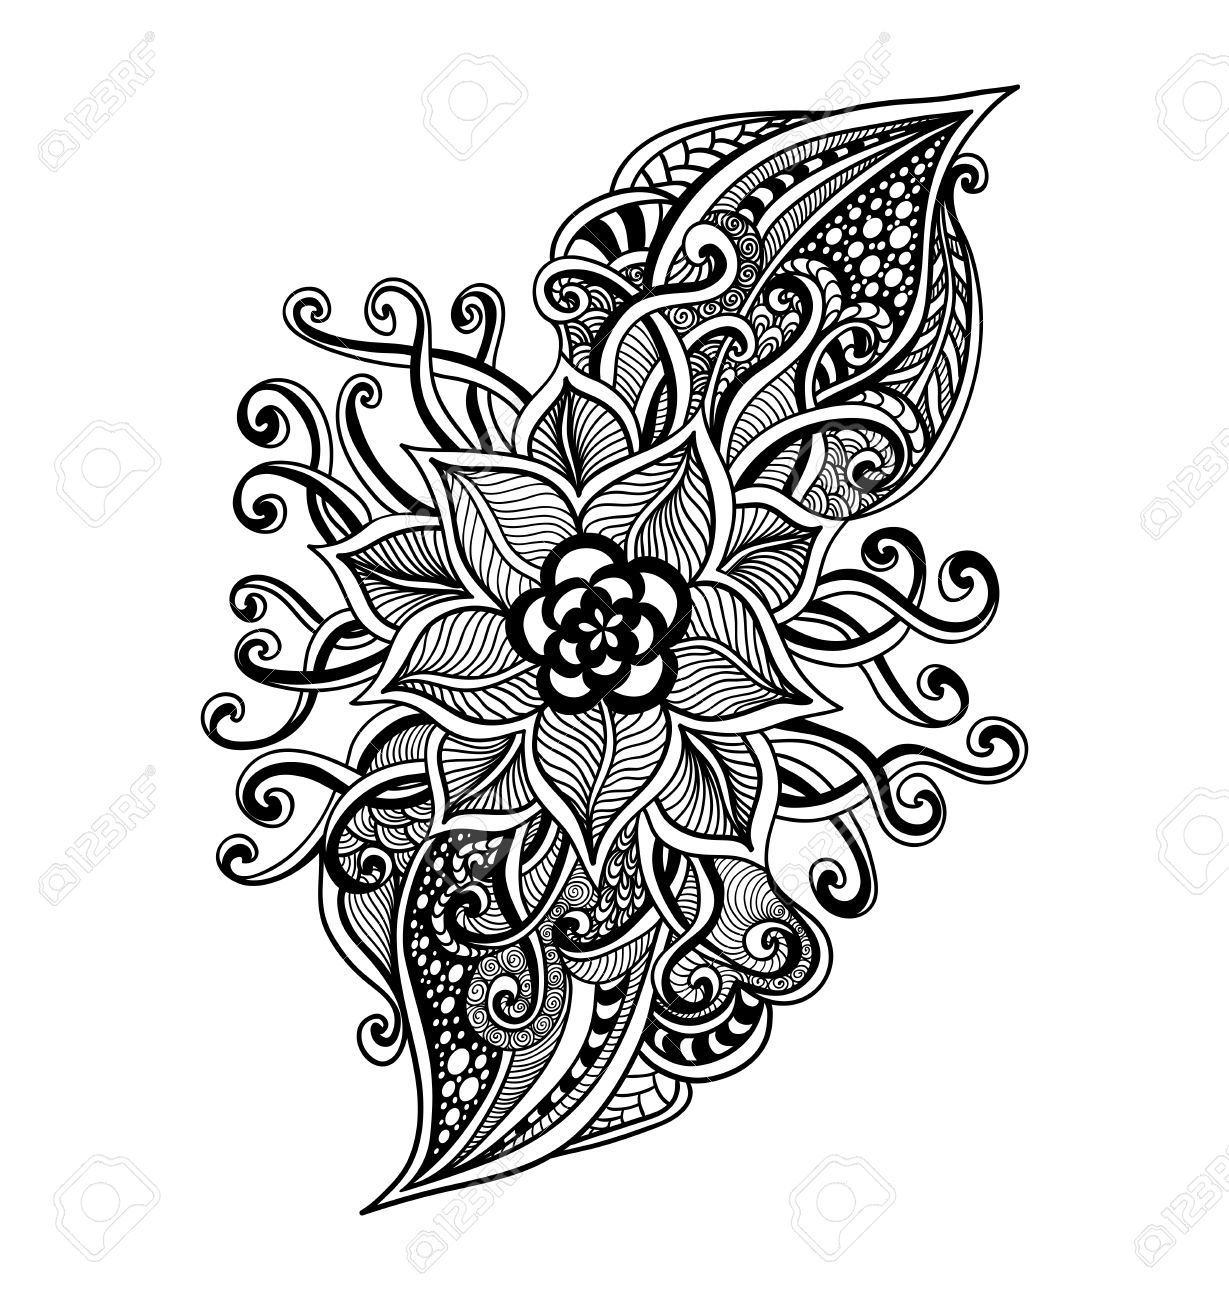 Zen Doodle Decorative Flower Black On White For Coloring Page Or Relax Book